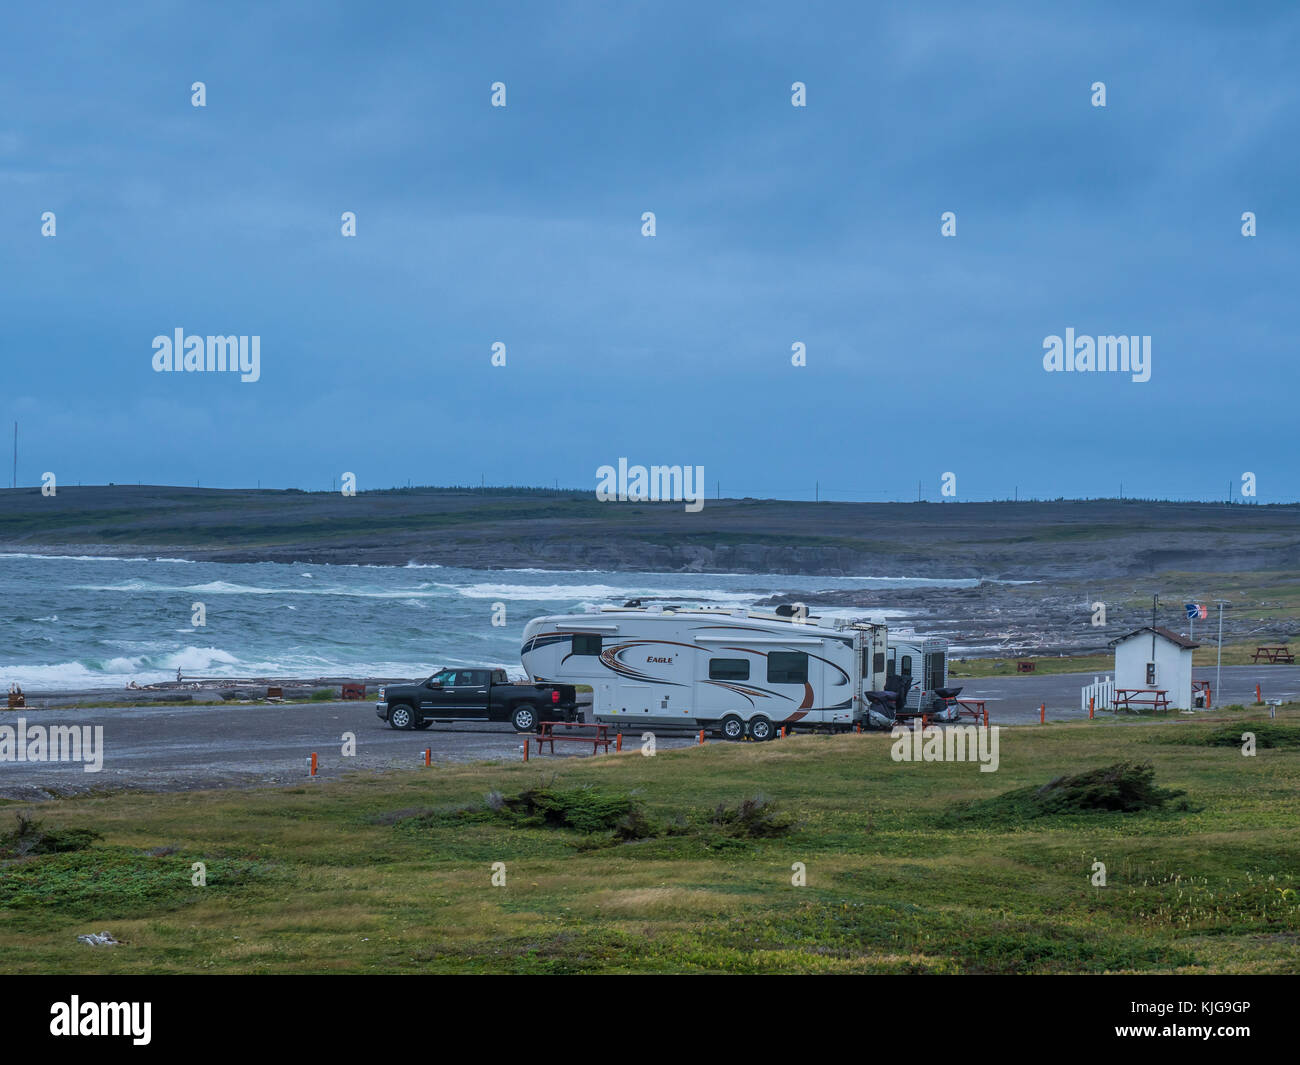 Shoreline campground run by local Lyons Club, Port au Choix, Highway 430, the Viking Trail, Newfoundland, Canada. - Stock Image